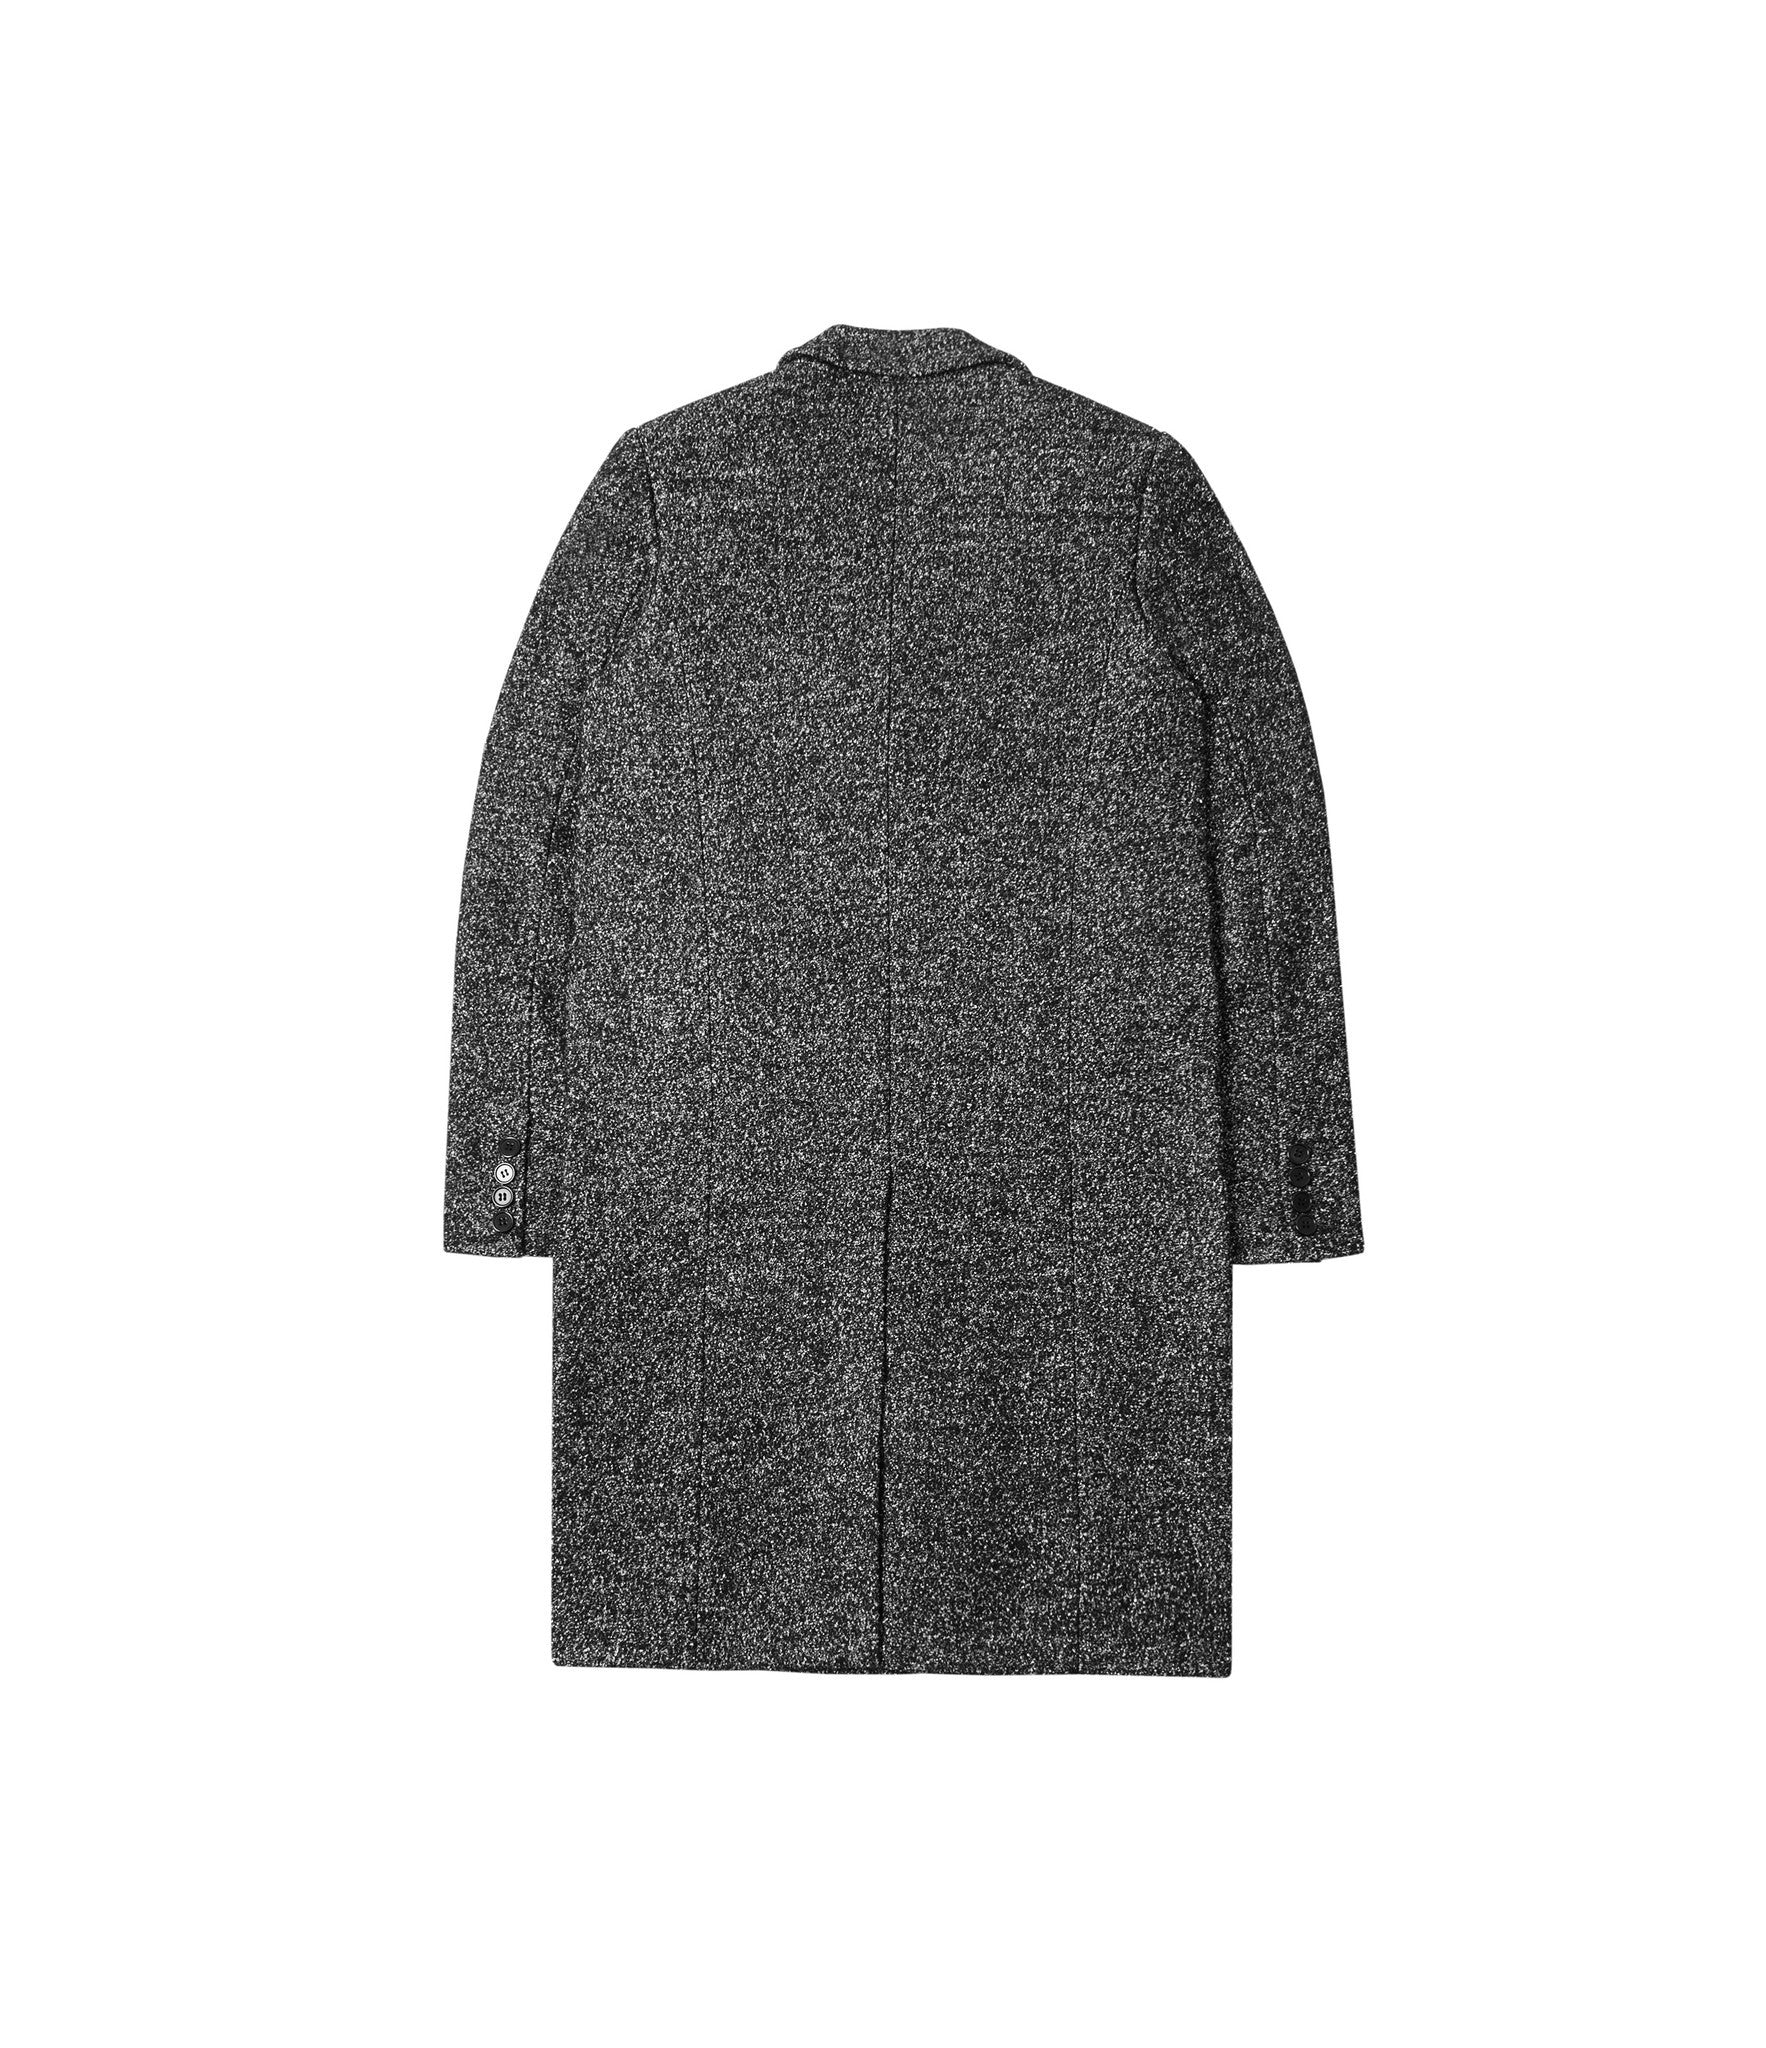 Underated - Wool Blend Overcoat - COMMON  - 2